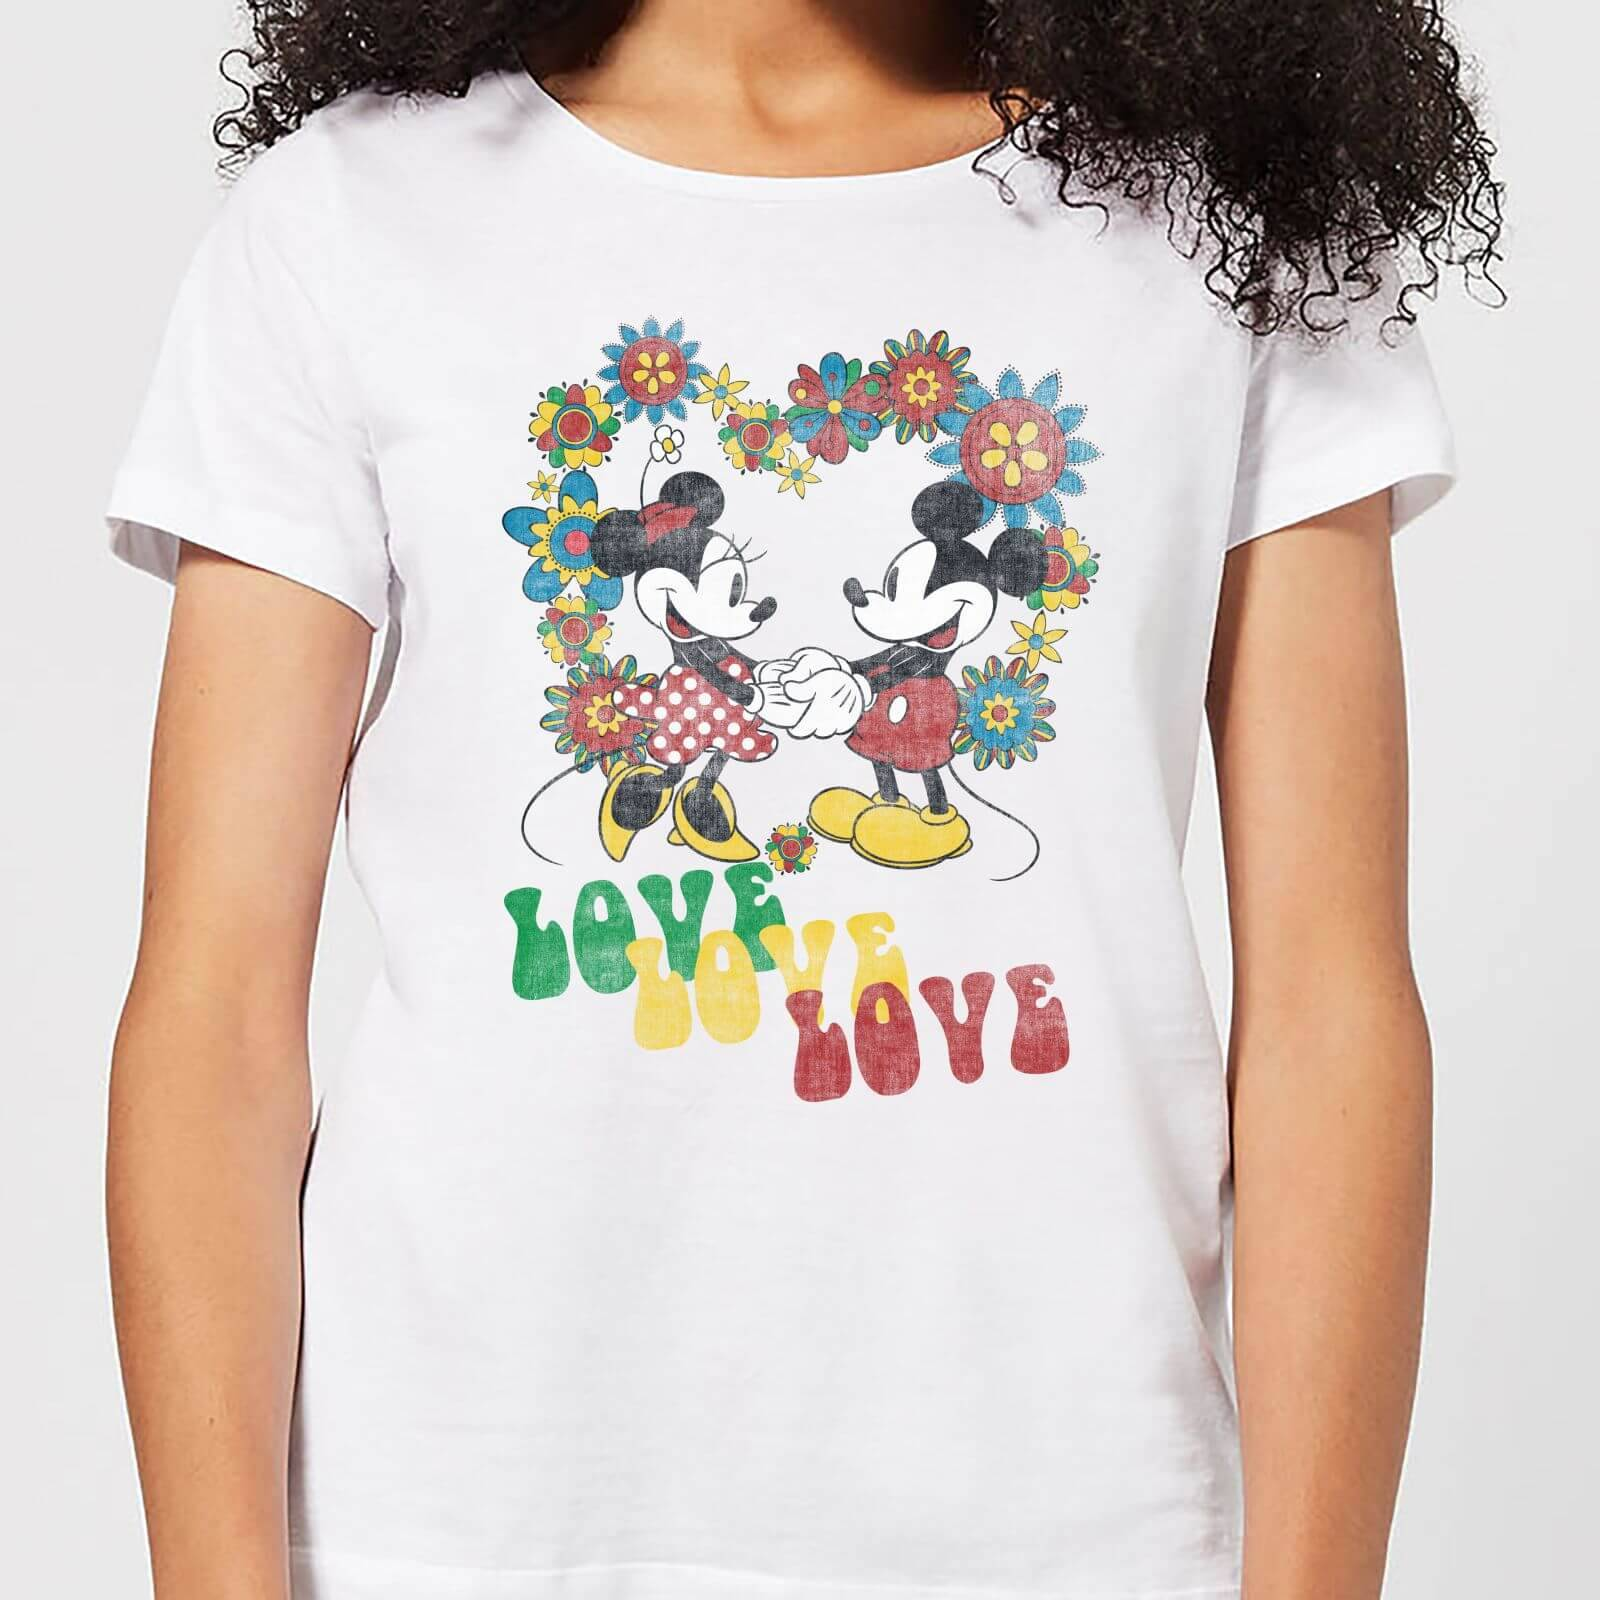 Disney Mickey Mouse Hippie Love Women's T-Shirt - White - 4XL - White